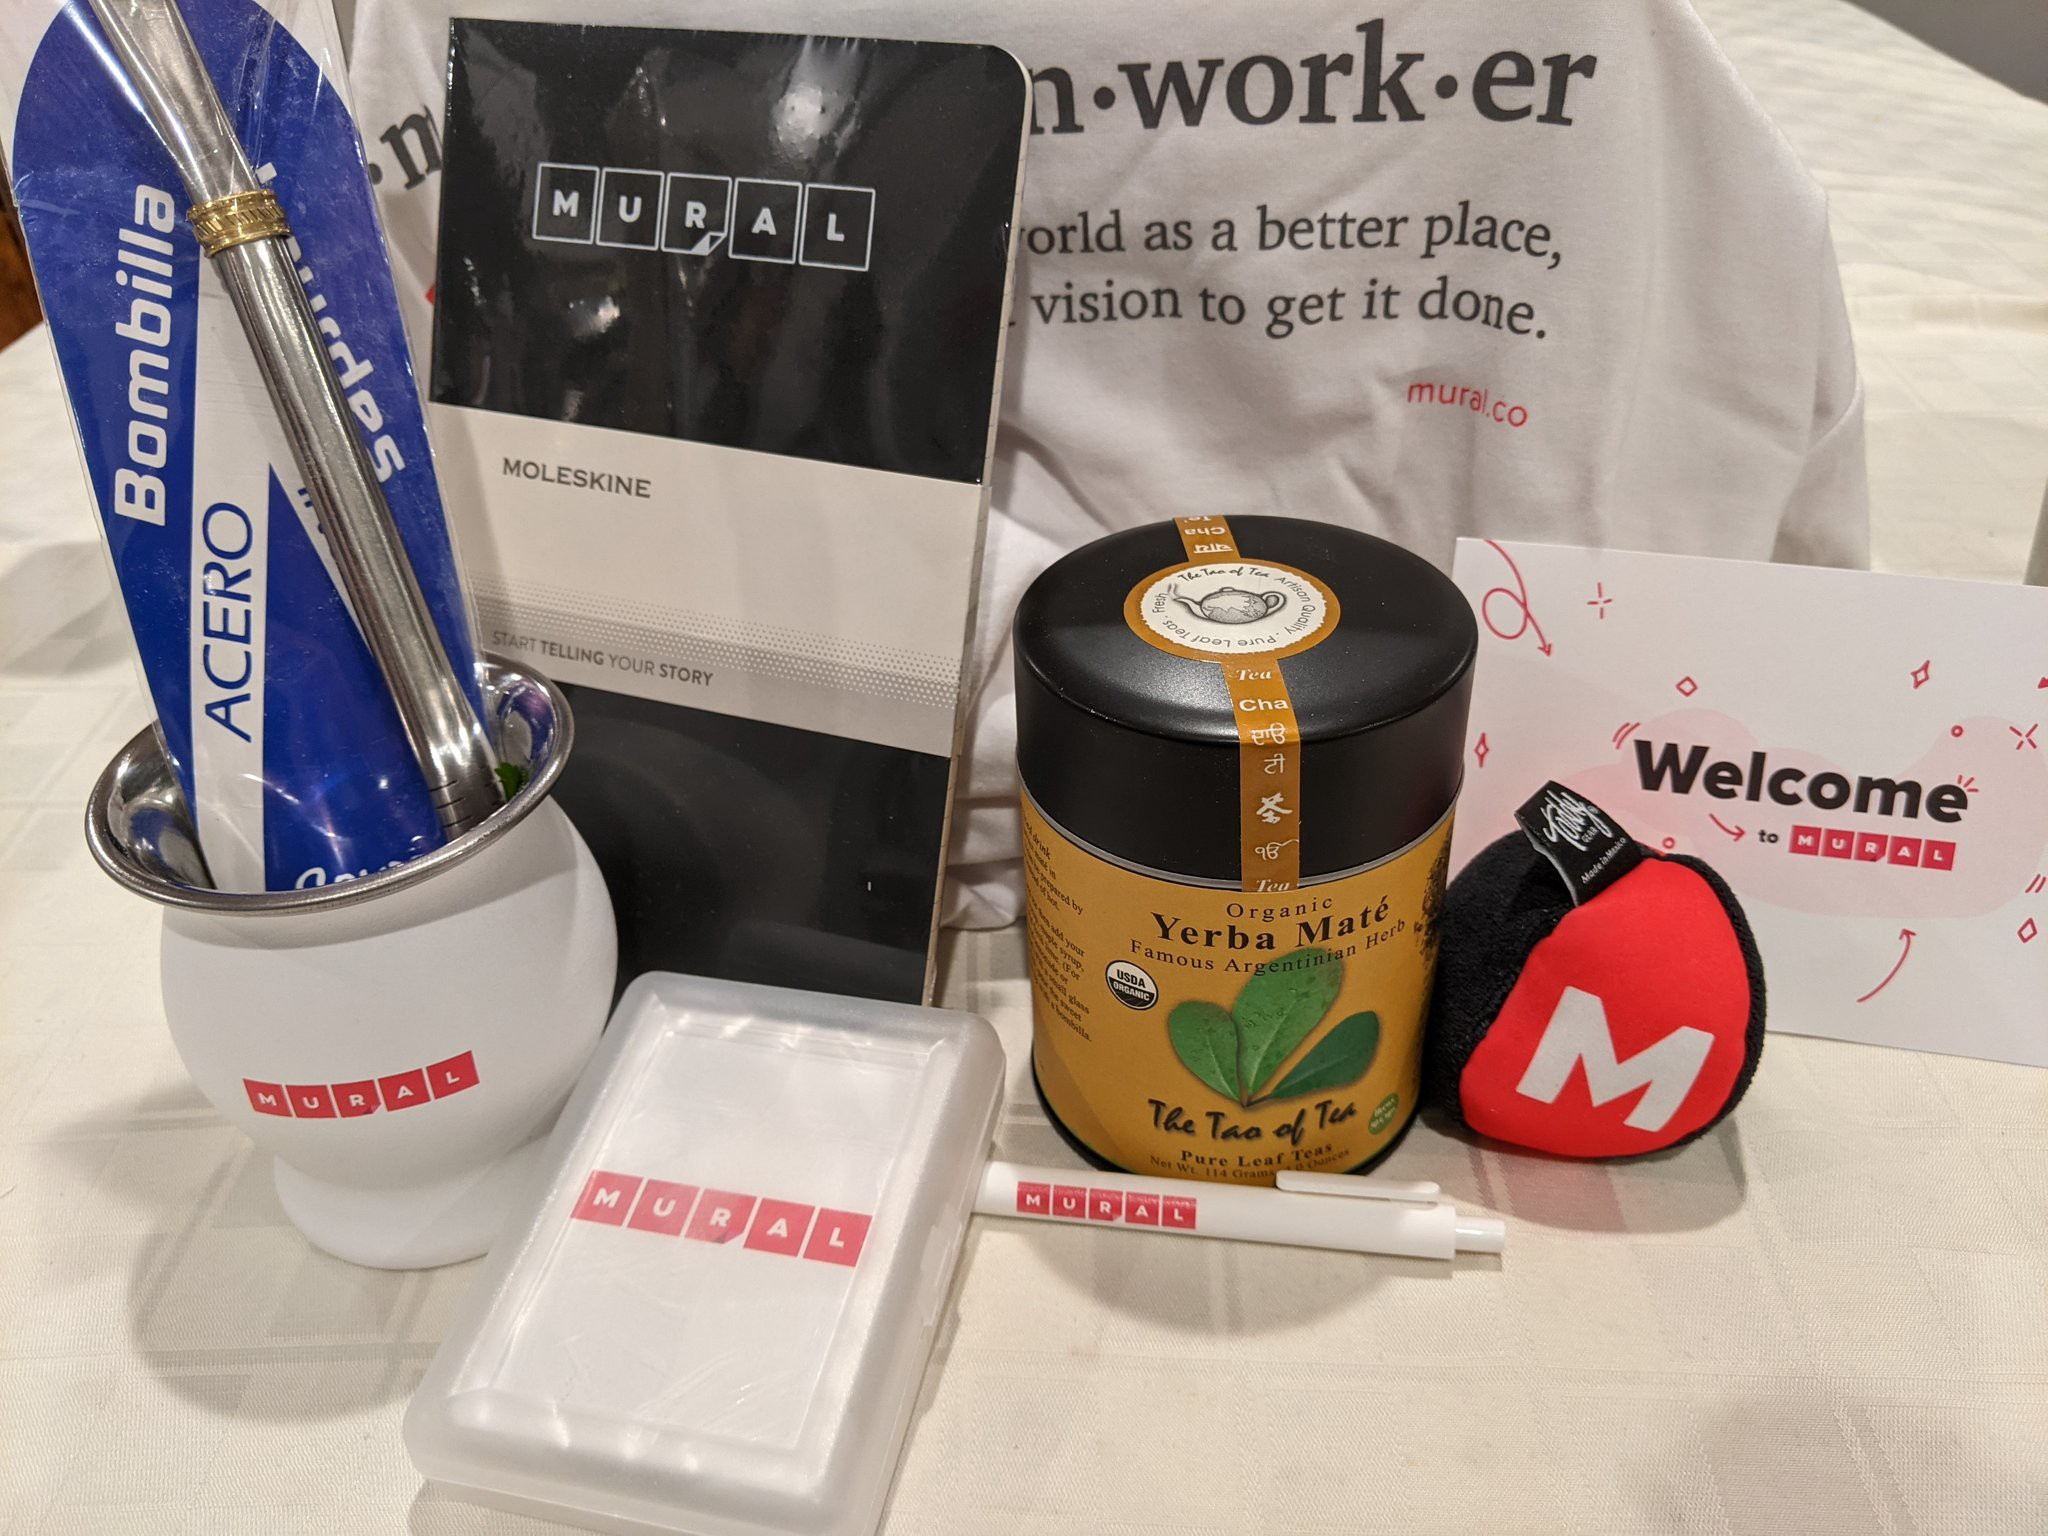 Photo of an assortment of MURAL branded swag, including the materials needed to make yerba mate tea.